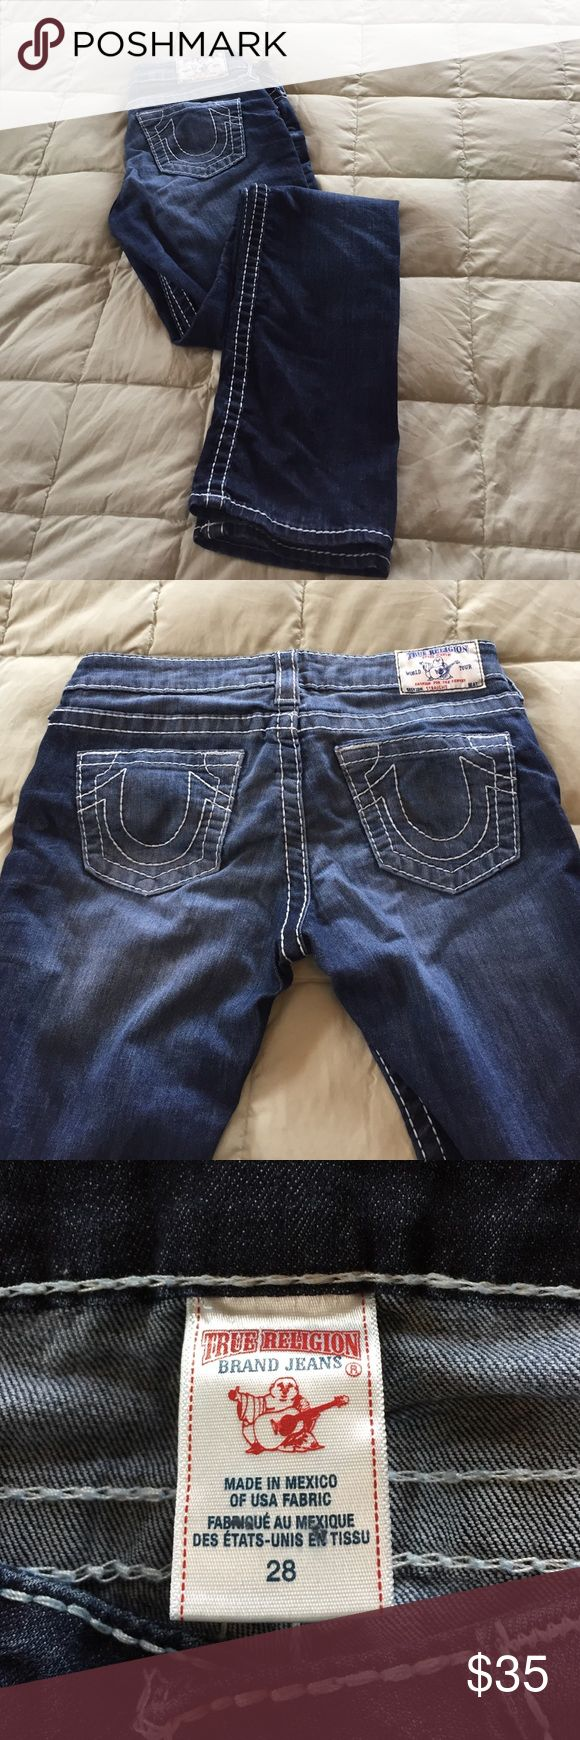 """True Religion Straight Leg Jeans True Religion straight leg jeans size 28.  Purchased new at TR outlet.  32"""" inseam. Lightly worn. Downsizing so it's your lucky day.  These have a straight leg not skinny. True Religion Jeans Straight Leg"""